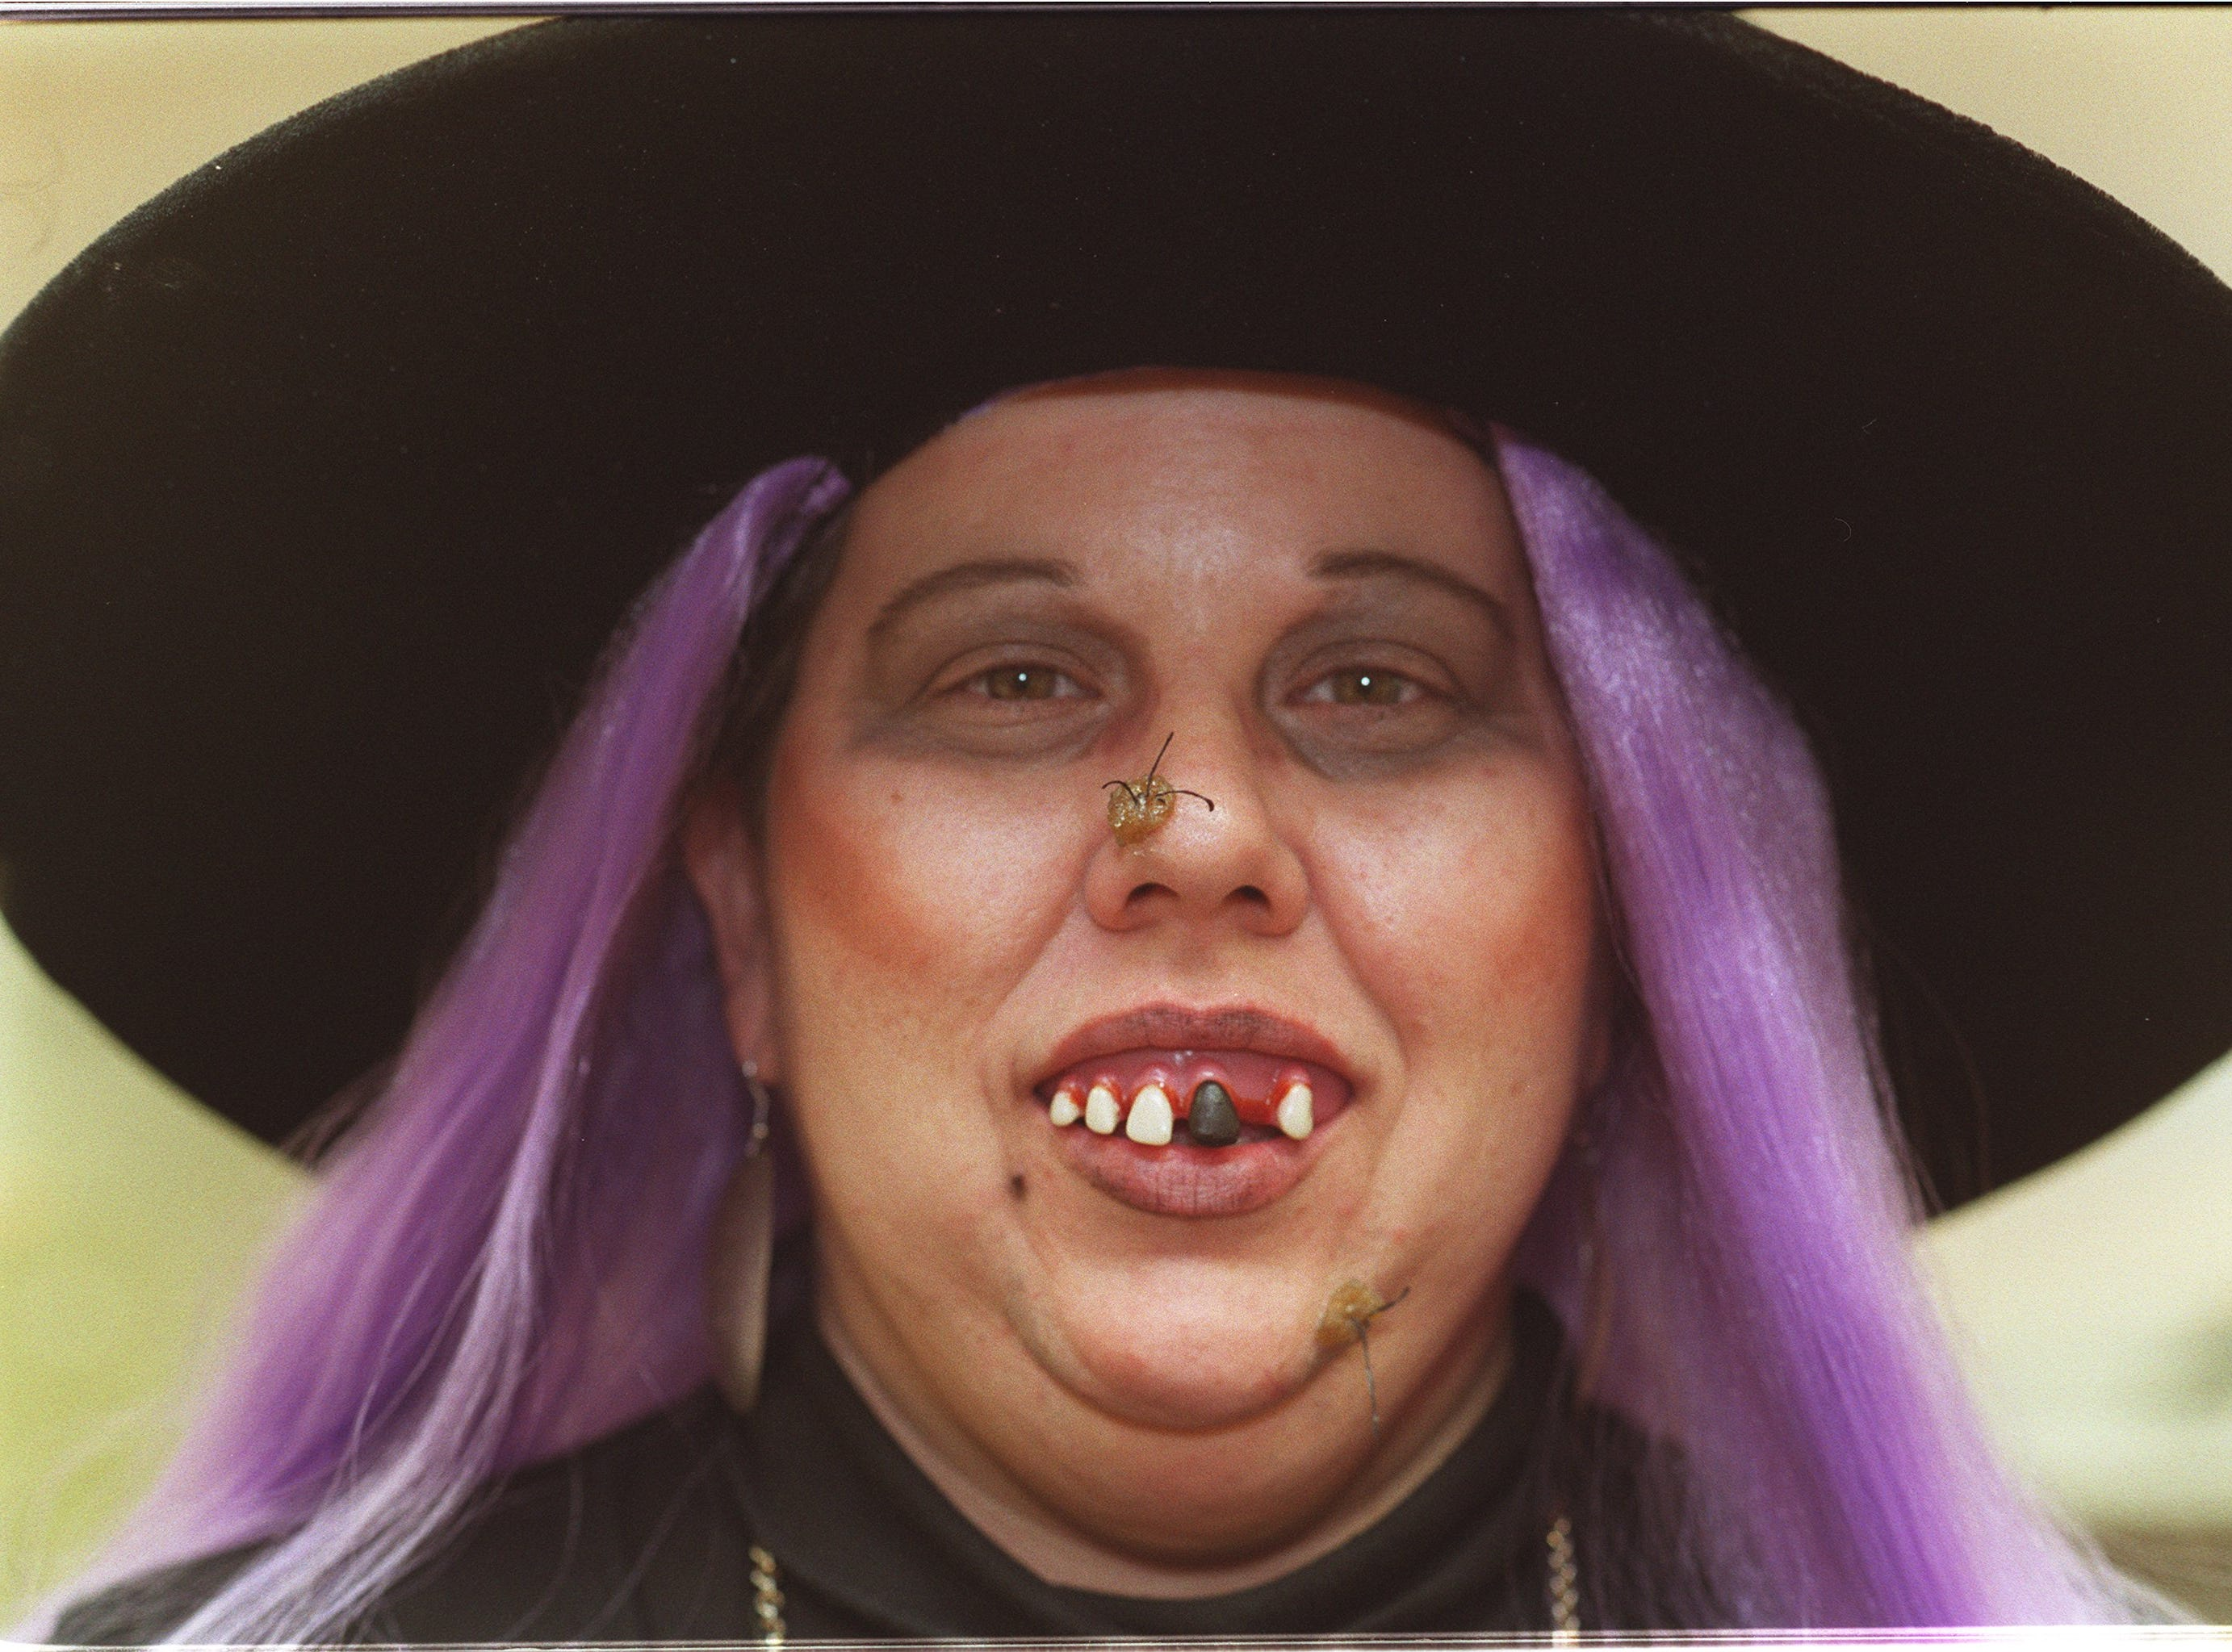 2000: Lisa Hoyte dressed for work as an old, haggard witch Tuesday to celebrate Halloween. Hoyte is an administrative assistant at Career Resources, a division of Challenge Industries. `It makes for a fun, relaxed day,' she says. `It's nice to enliven the spirit in all of us.'